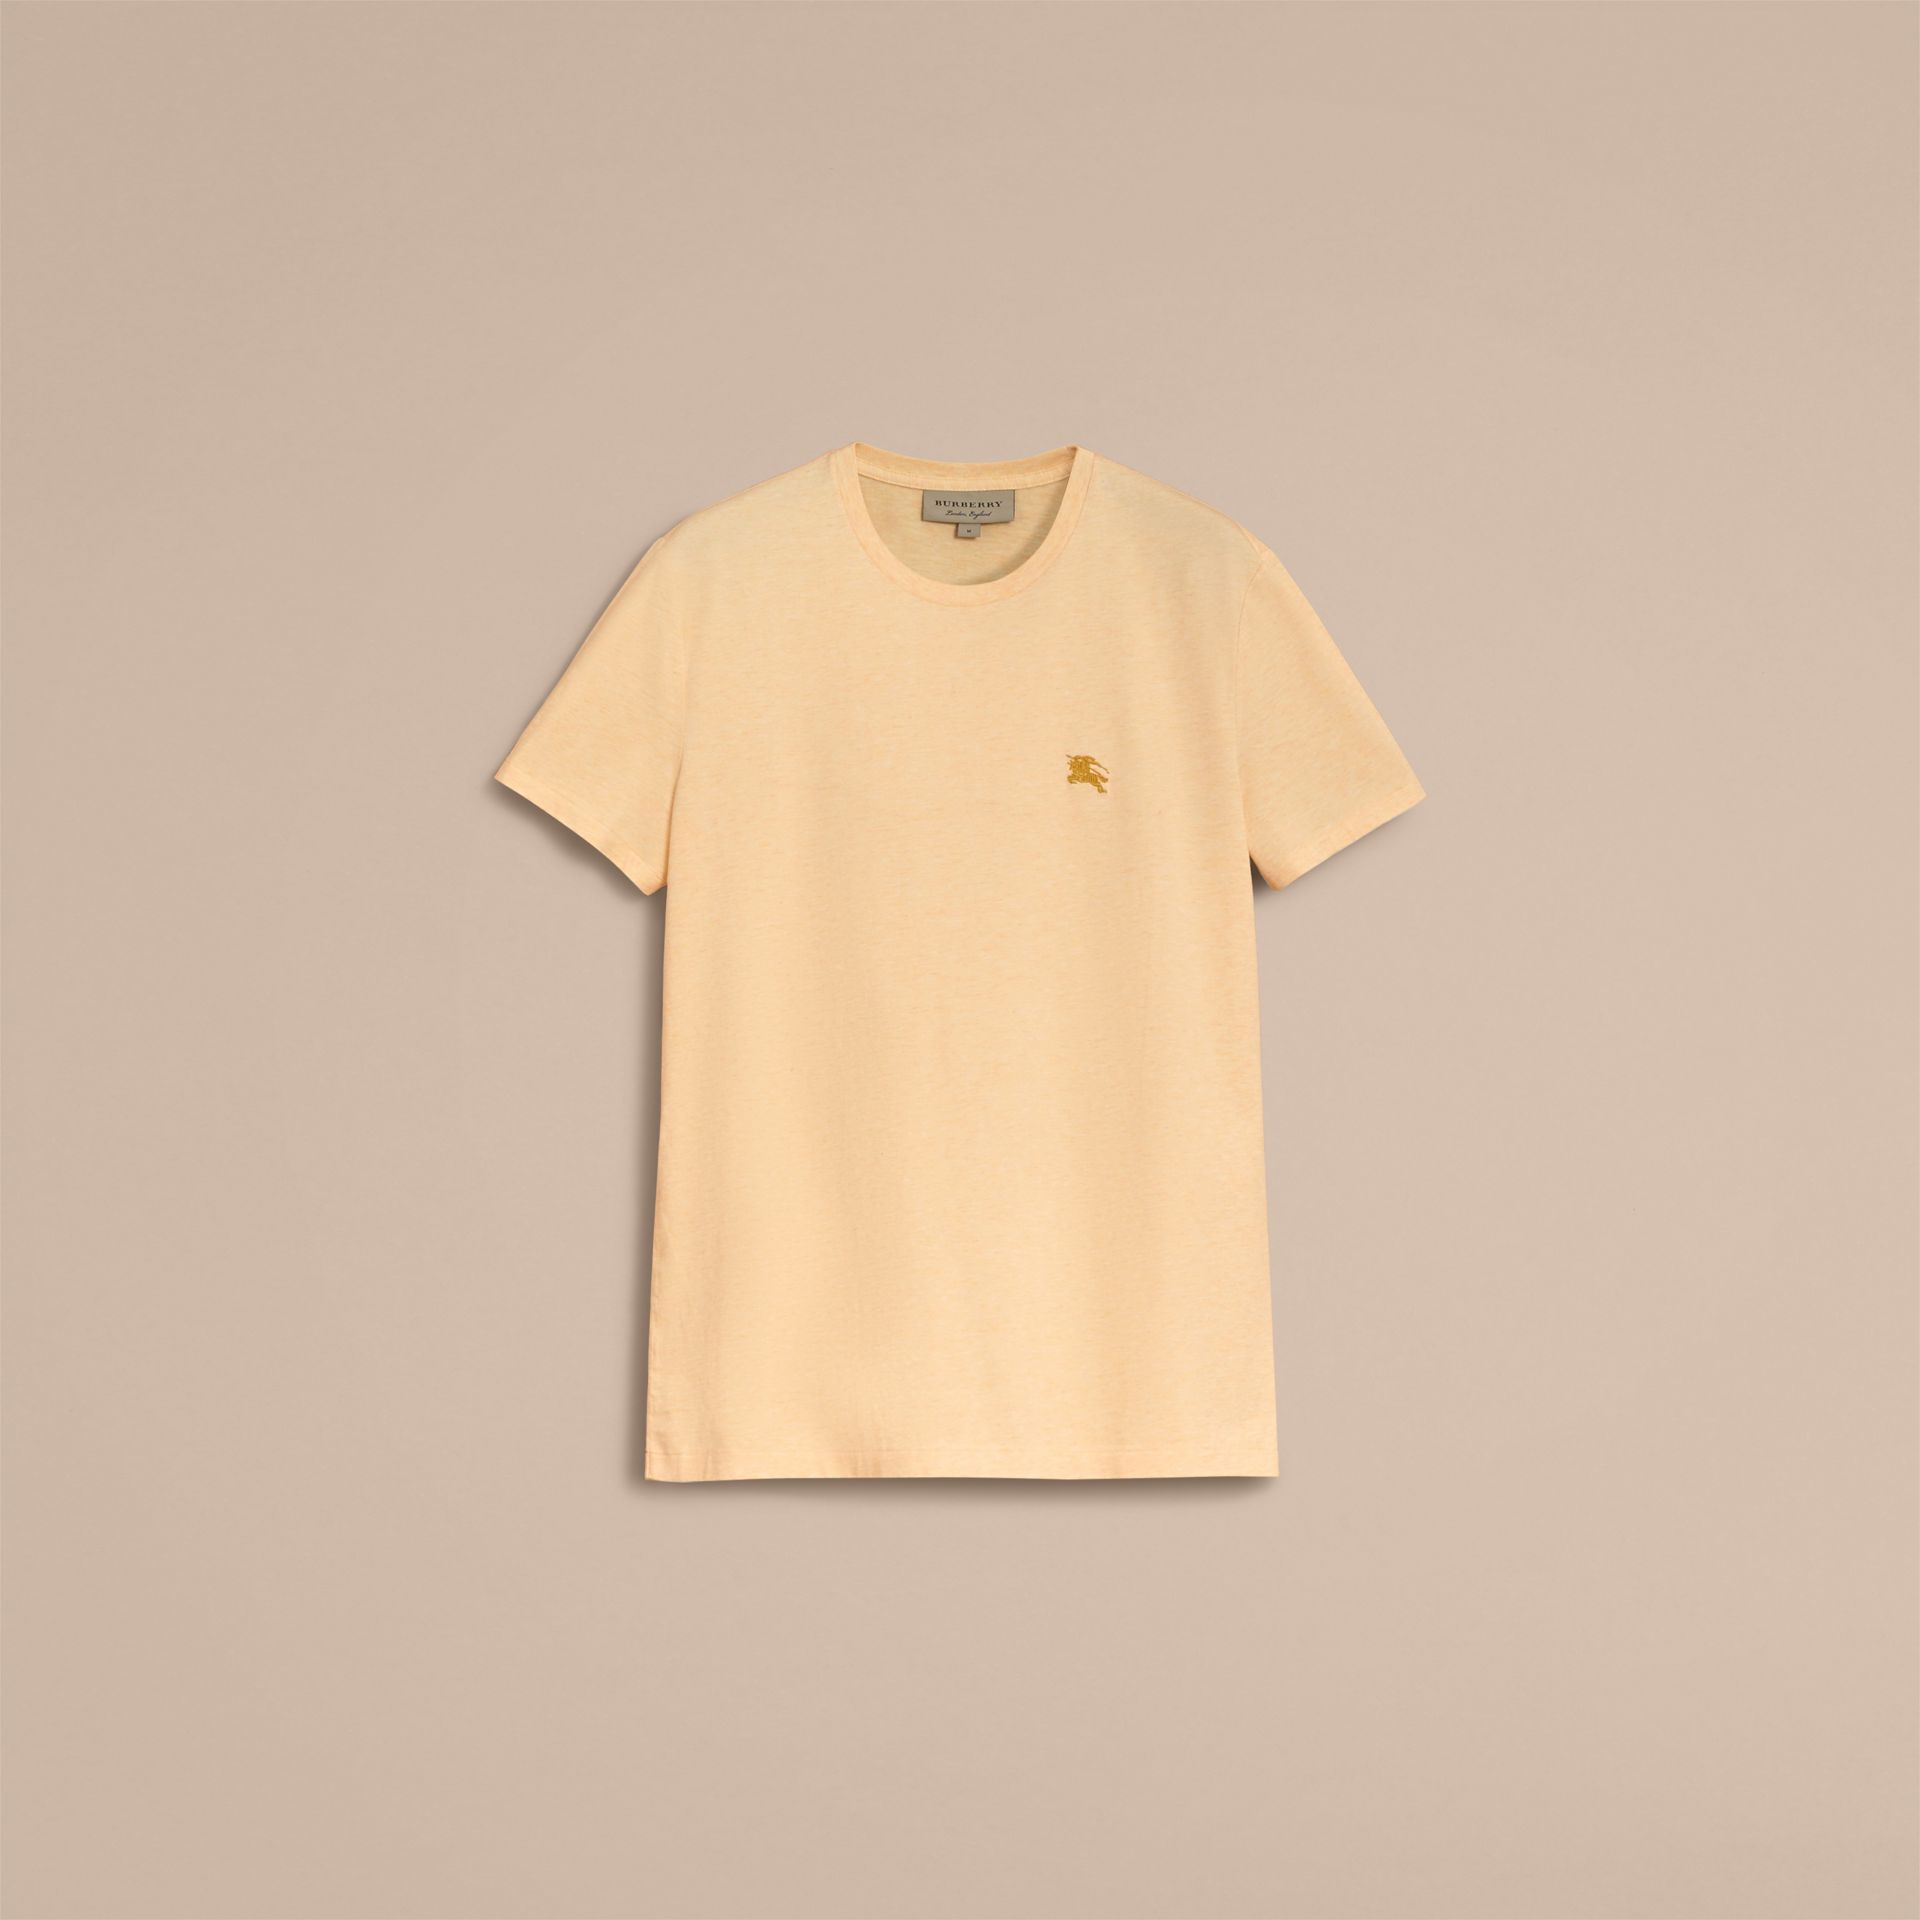 Cotton Jersey T-shirt in Pale Yellow Melange - Men | Burberry - gallery image 4